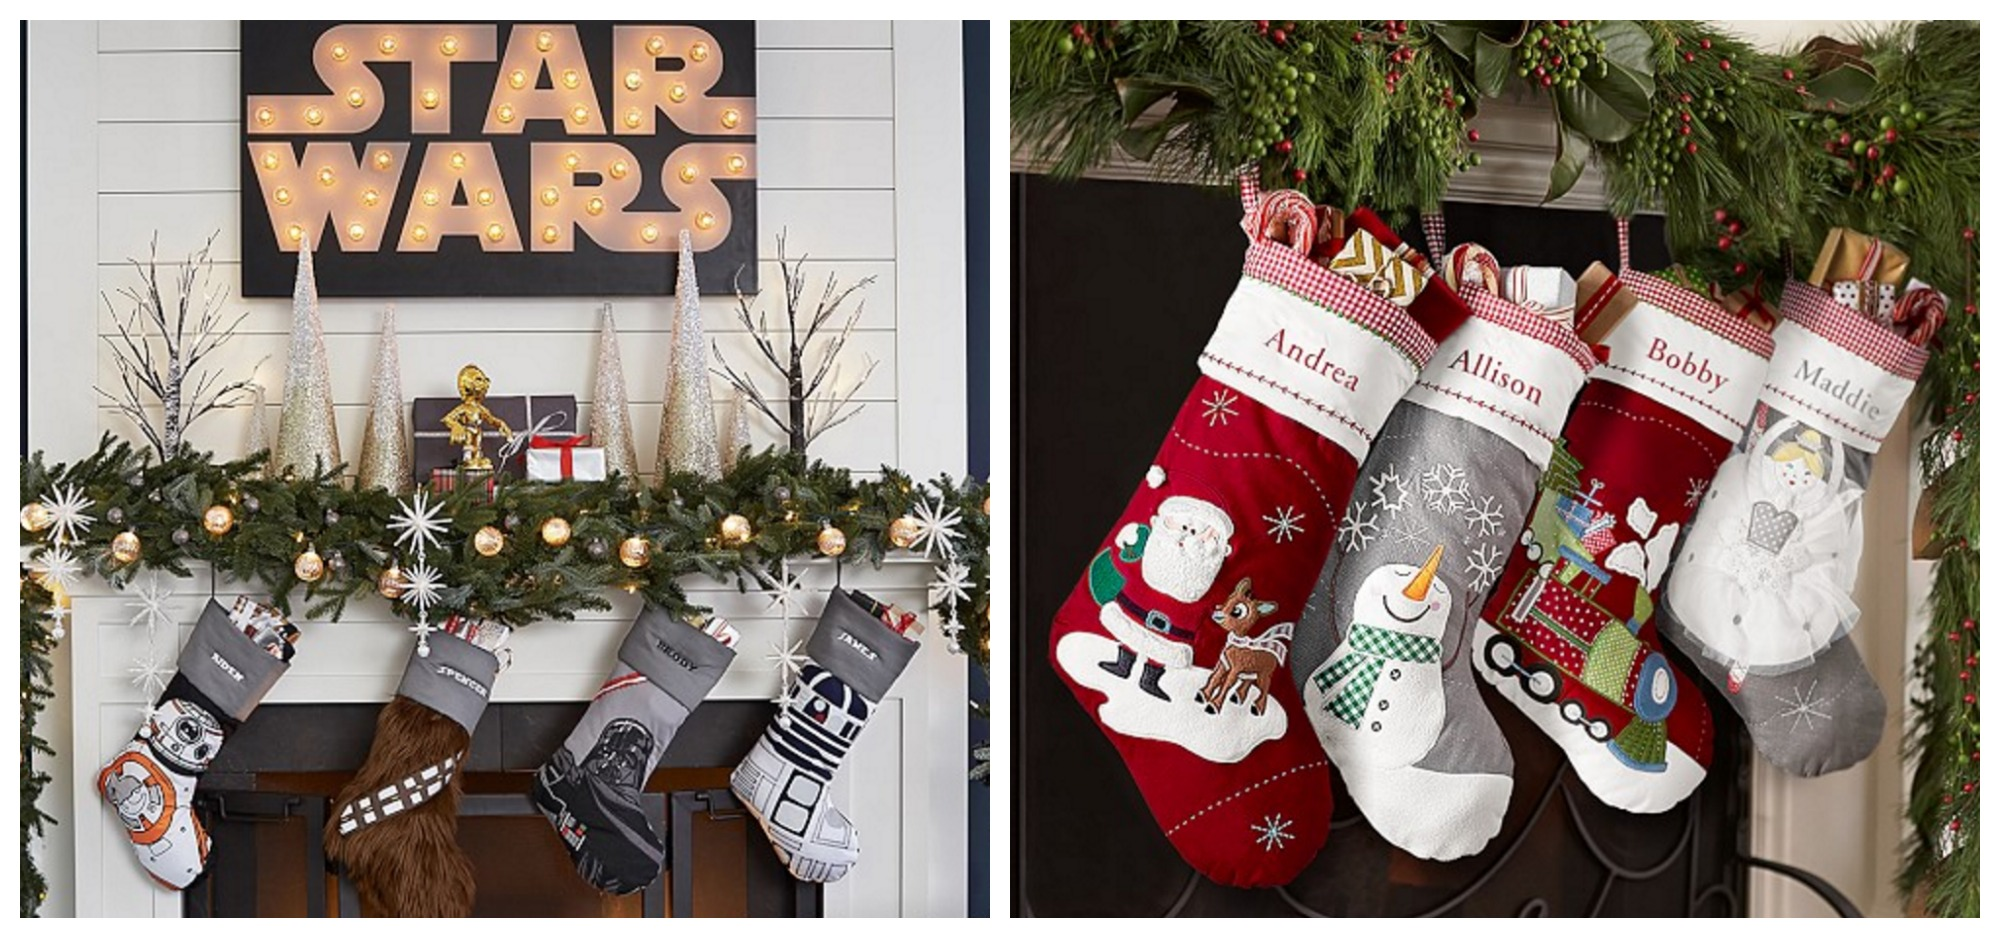 Stockings Pottery Barn Kids Always Has Such Darling Things For The Holiday Season